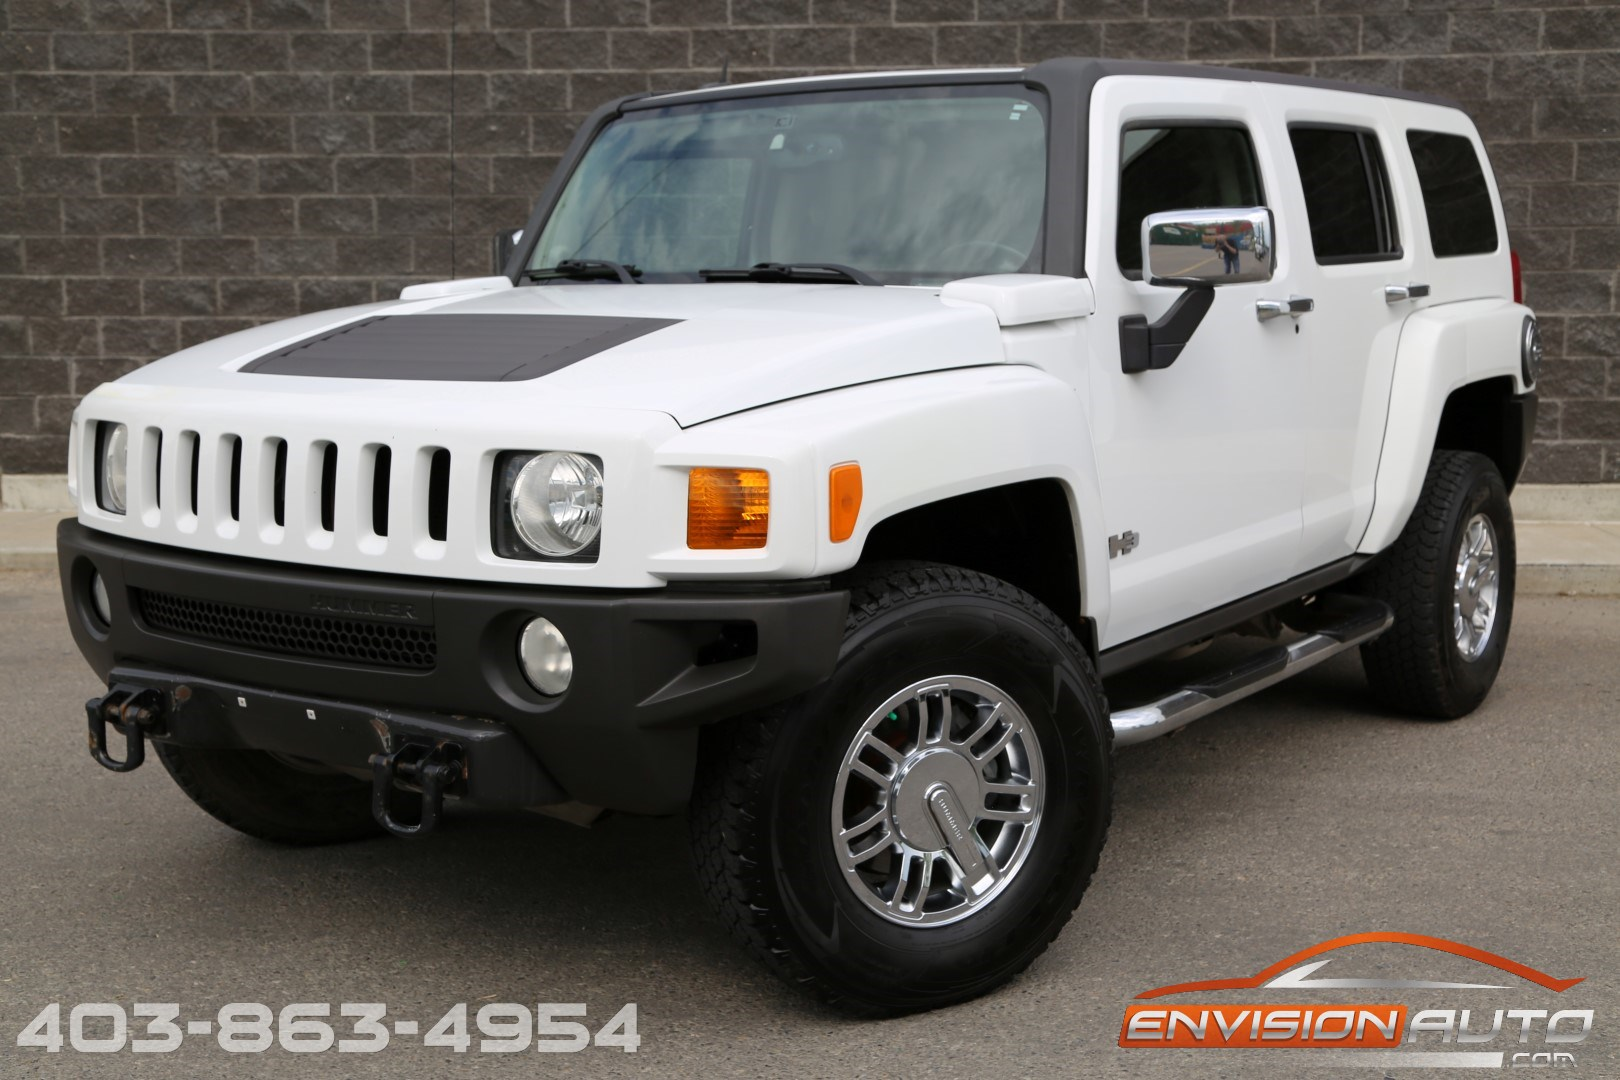 2007 h3 hummer suv luxury edition envision auto calgary 2007 h3 hummer suv luxury edition vanachro Images